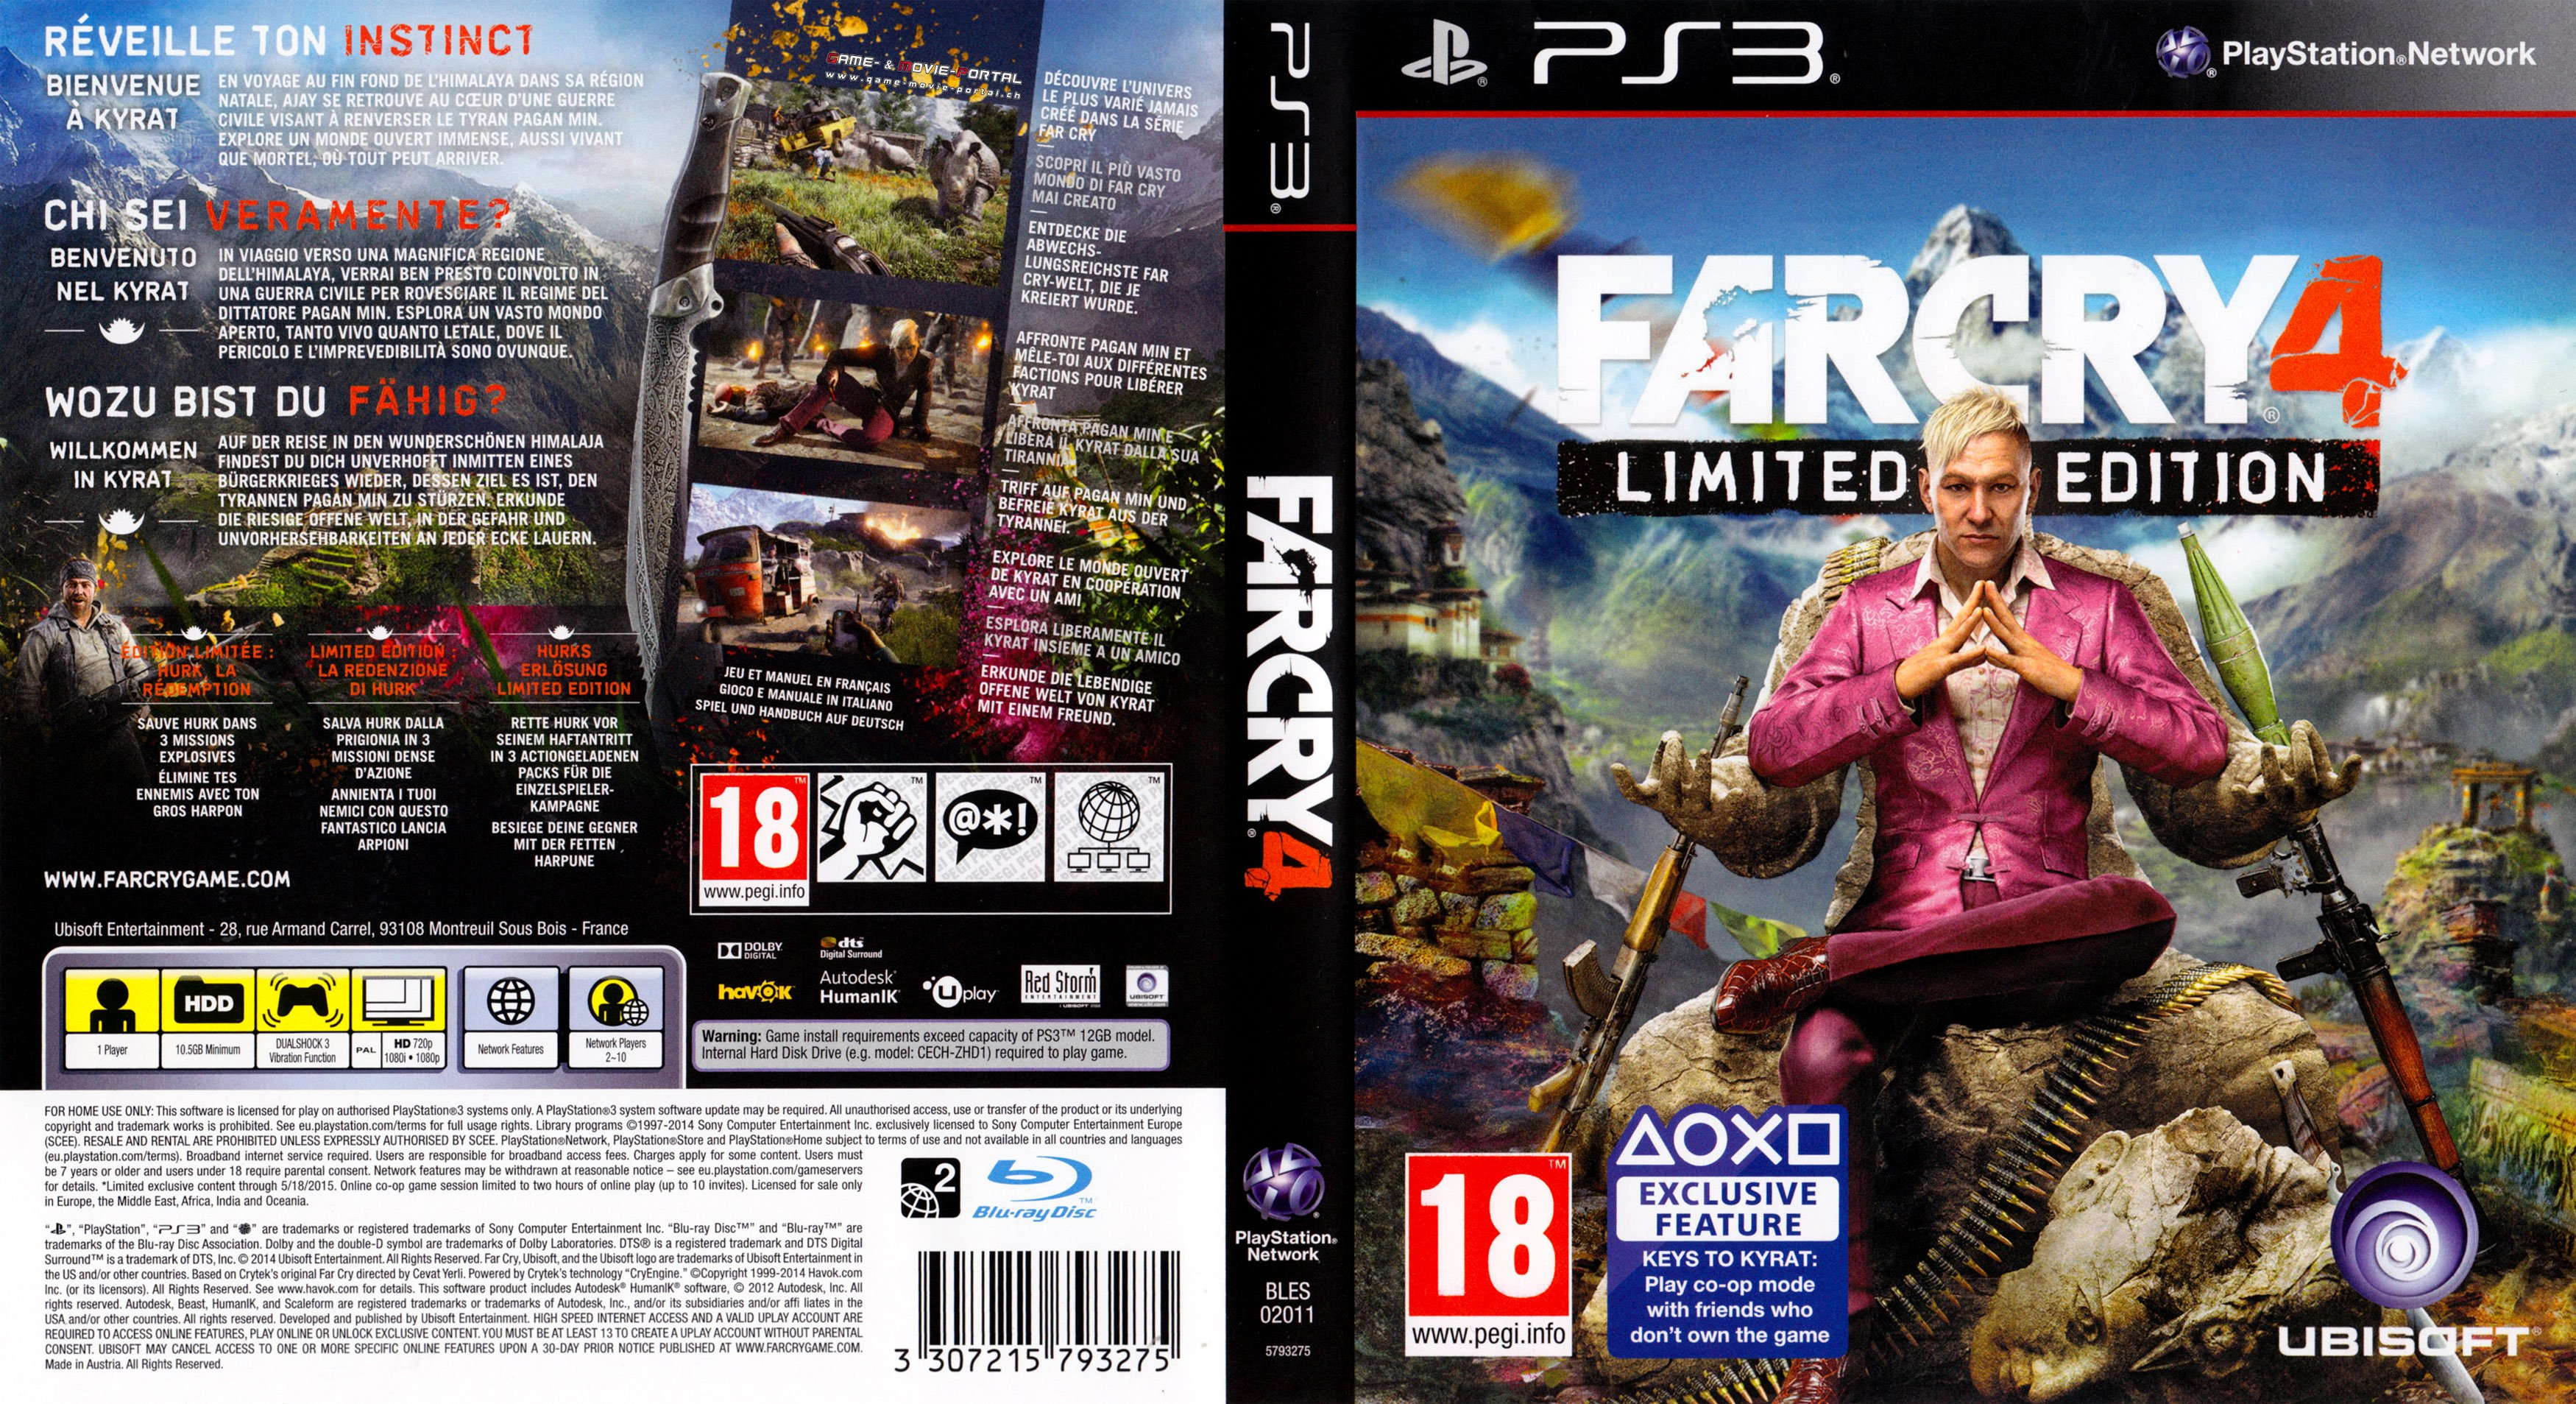 Far Cry 4 Limited Edition german ps3 cover | German DVD Covers